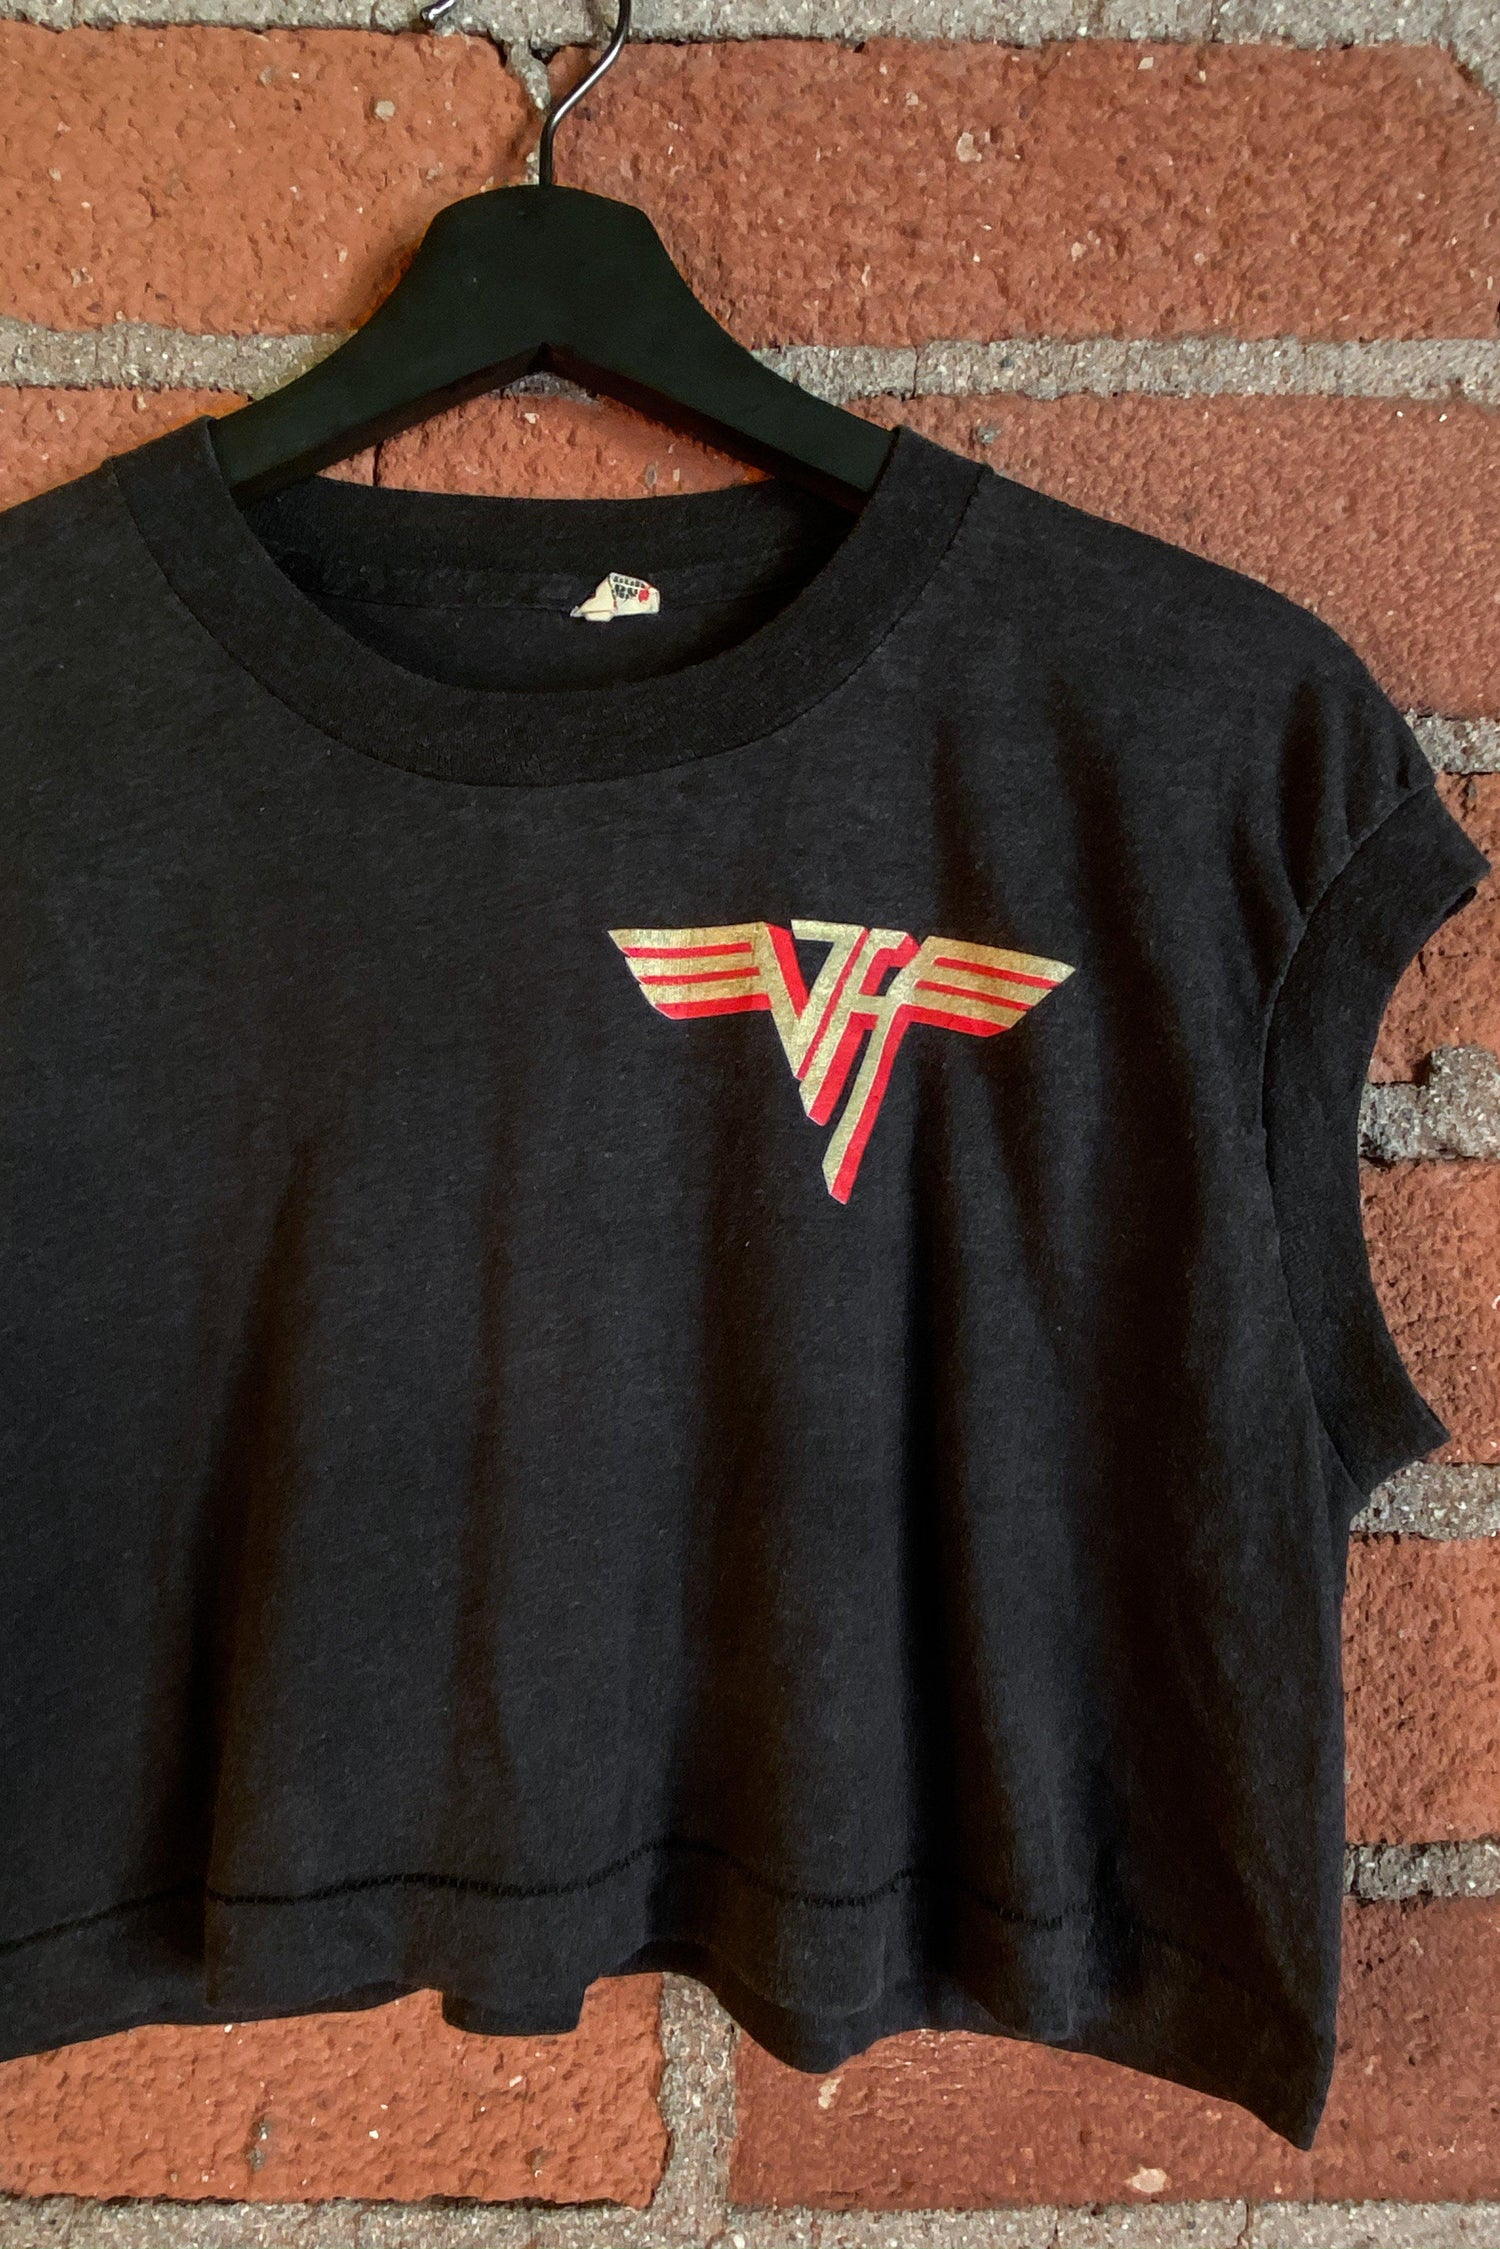 Van Halen Paper Thin 'N Soft Cropped 50/50 Tee, Tops, BACKBITE, BACKBITE